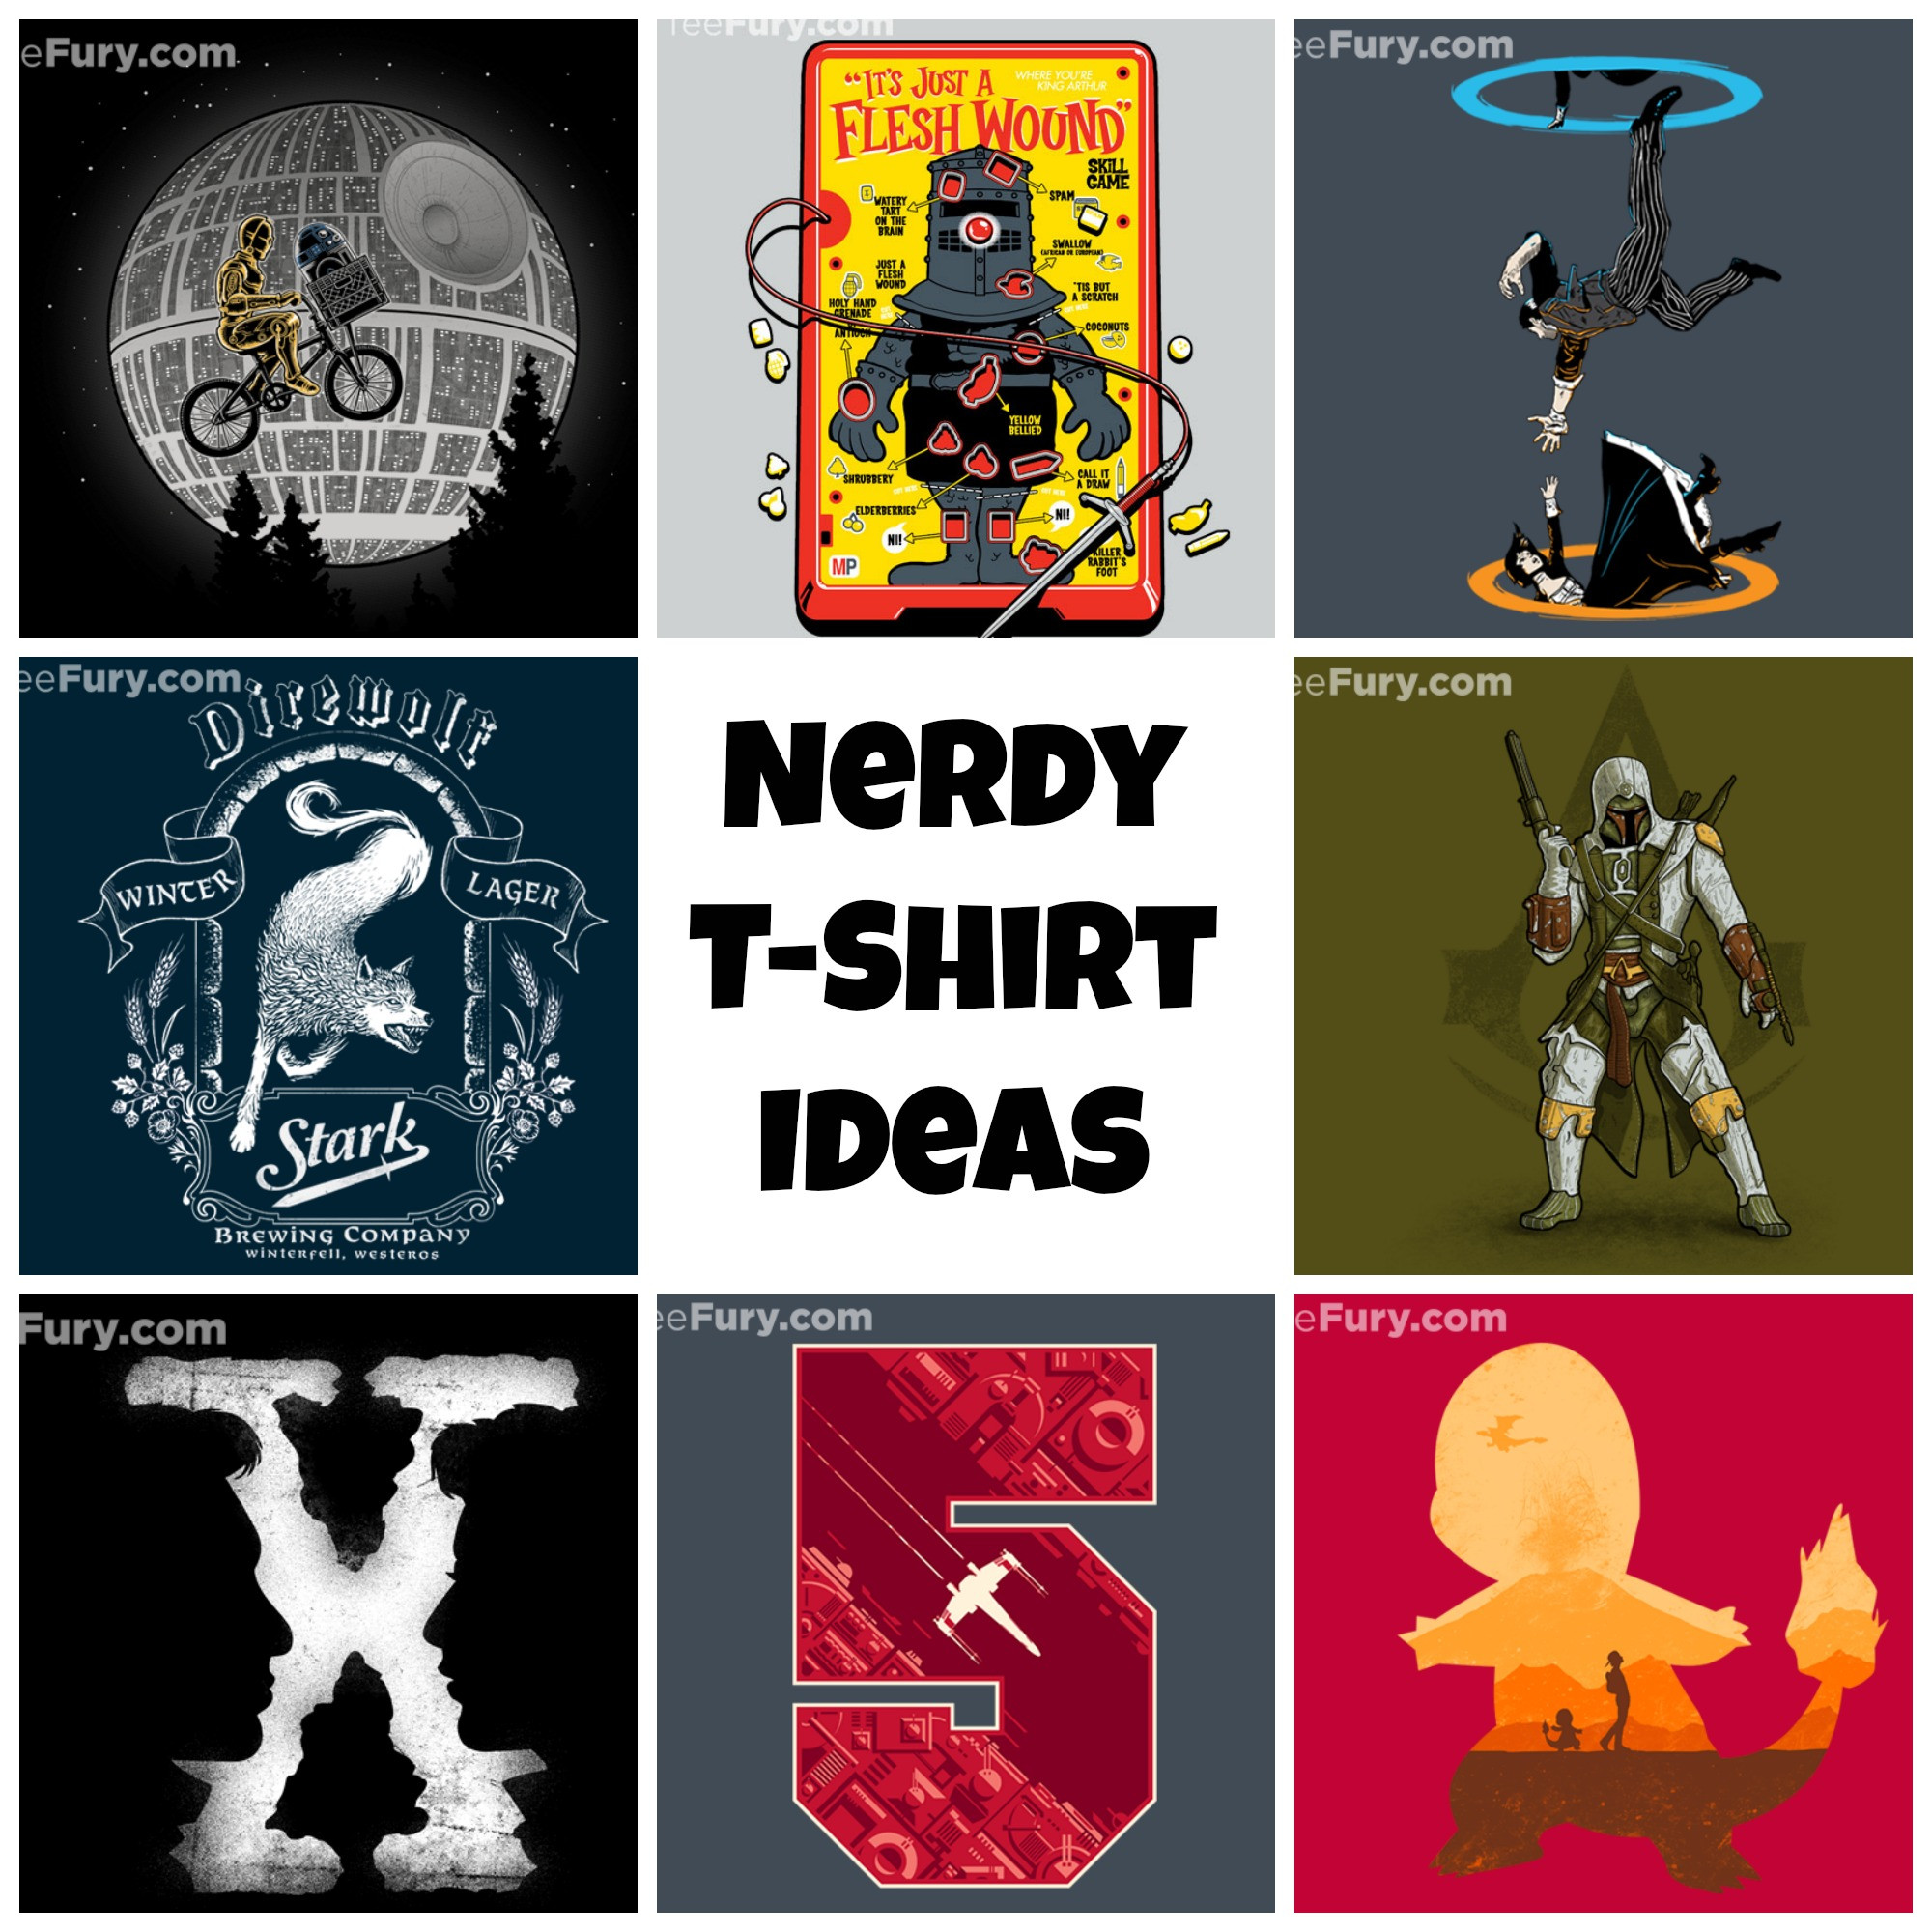 Best ideas about Nerdy Gift Ideas . Save or Pin Nerdy T shirt Gift Ideas for the Nerd in your Life Now.